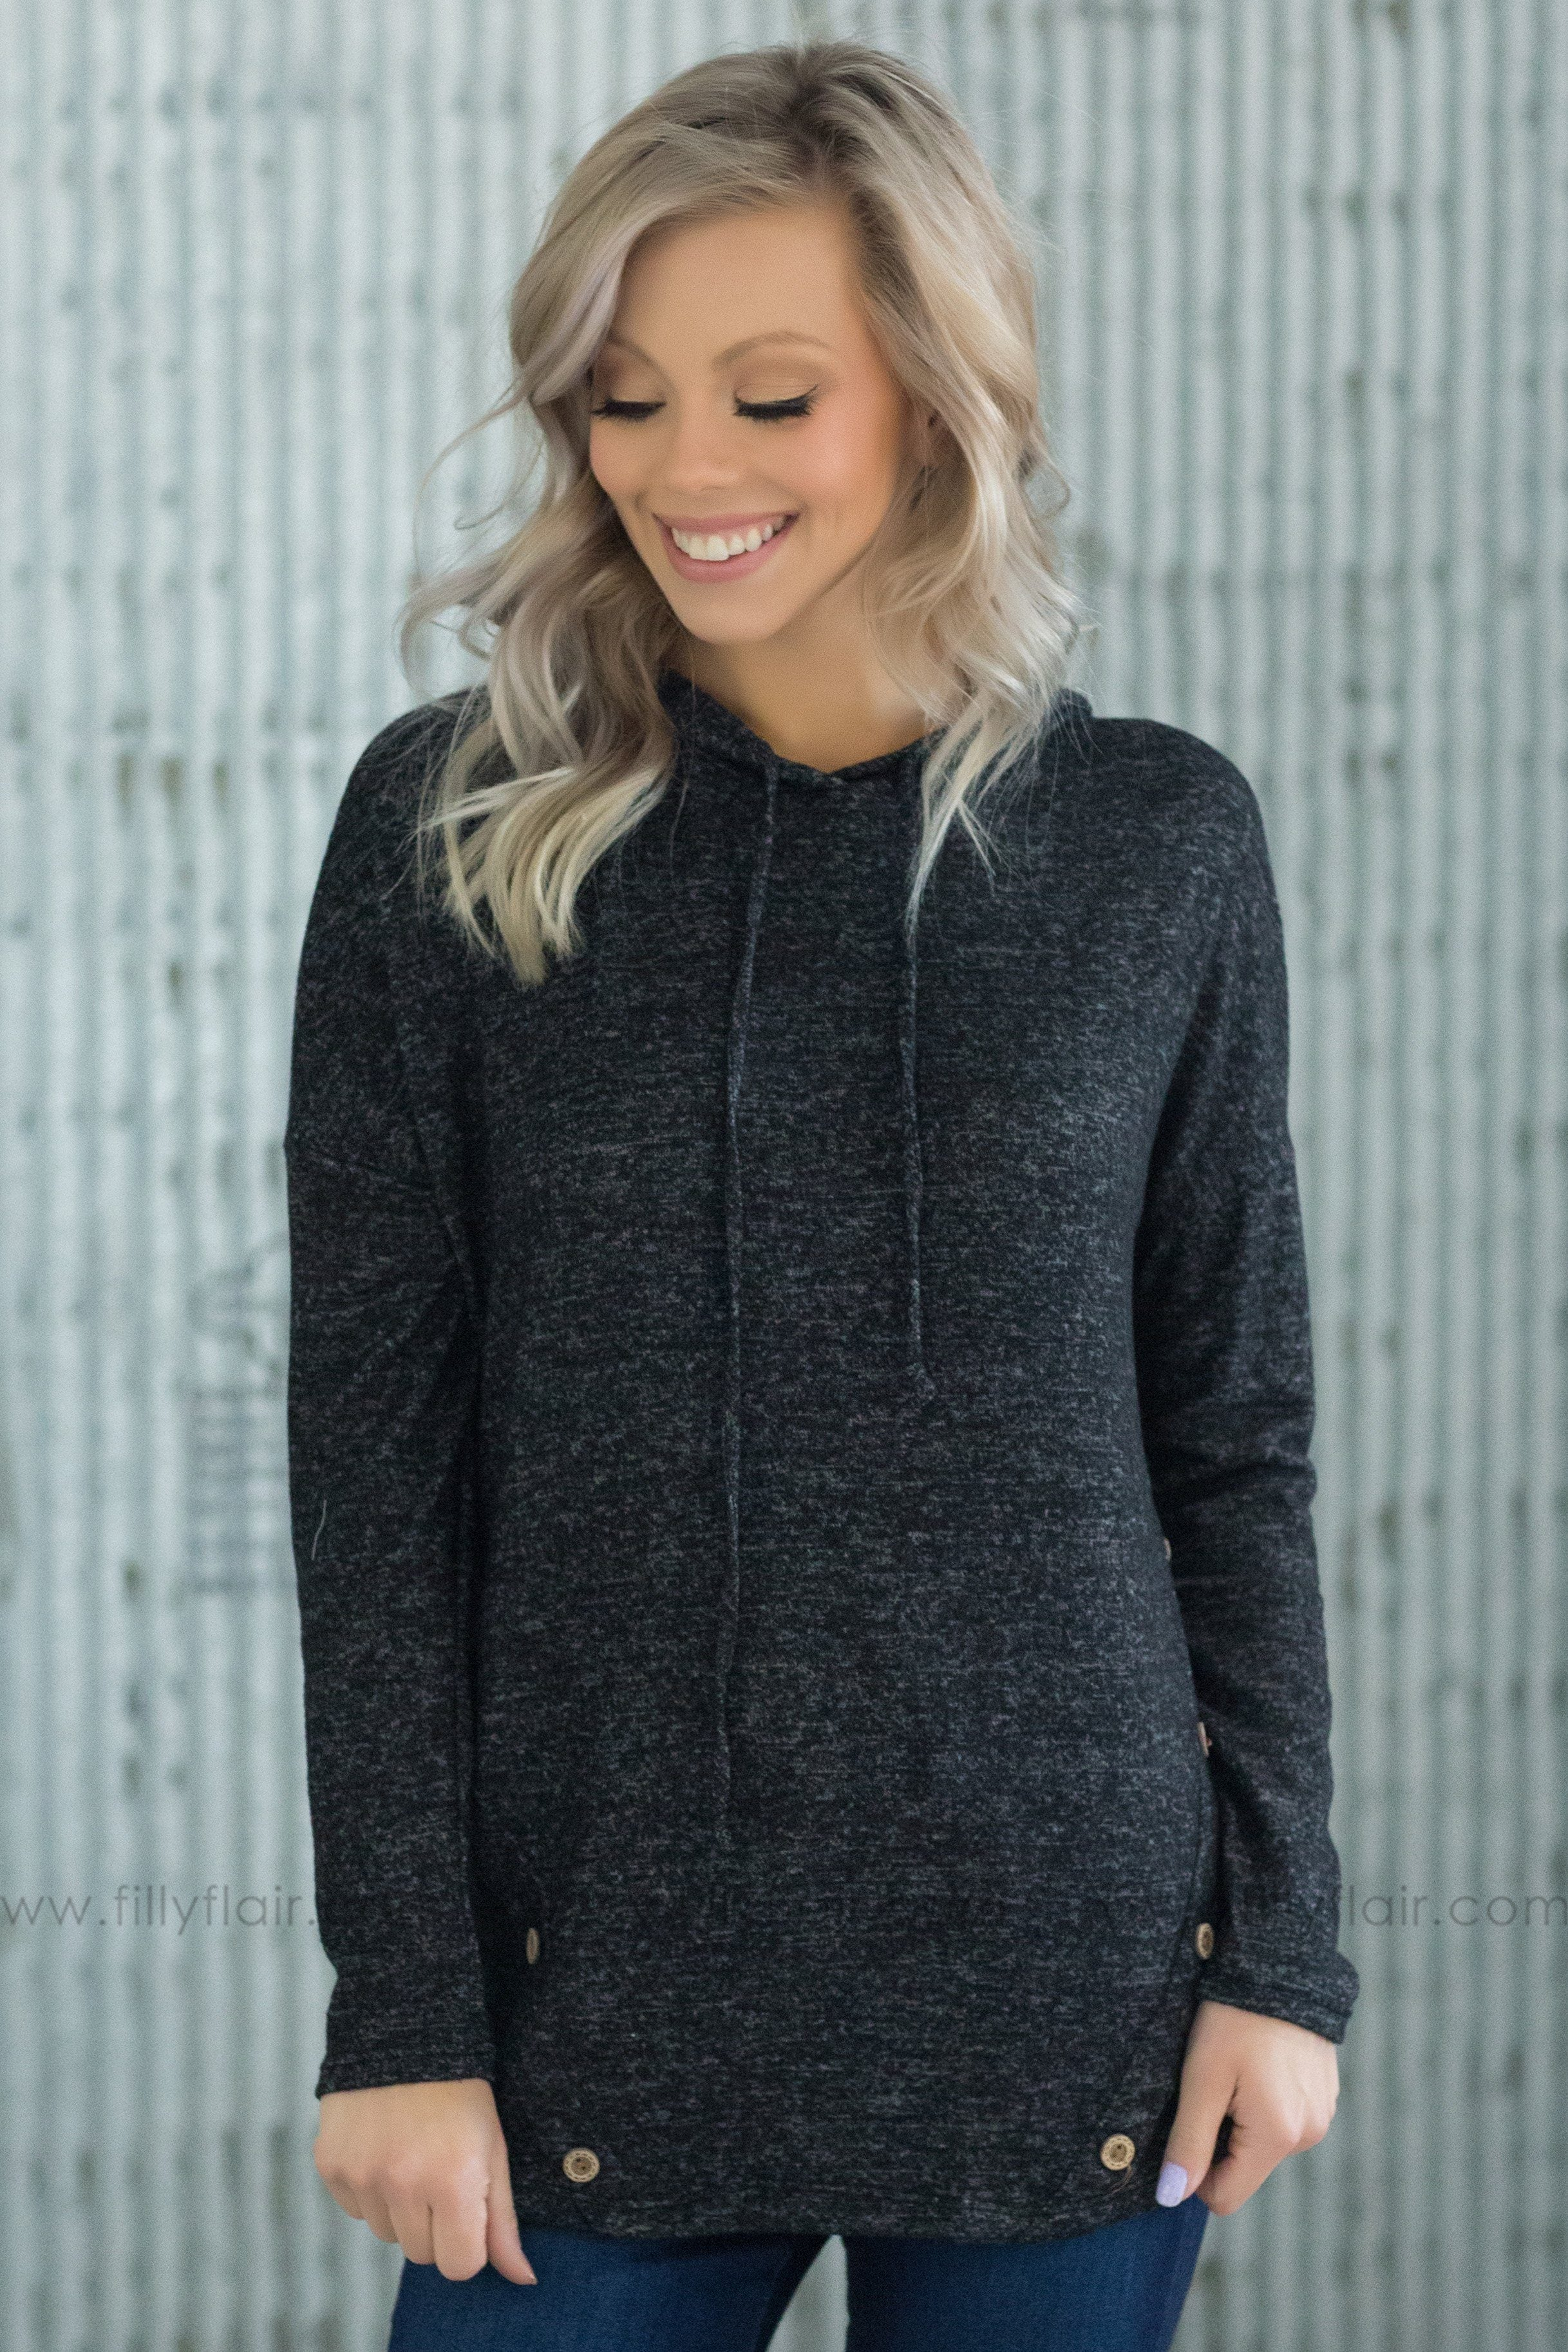 Show It Up Long Sleeve Button Detail Hooded Top in Black - Filly Flair